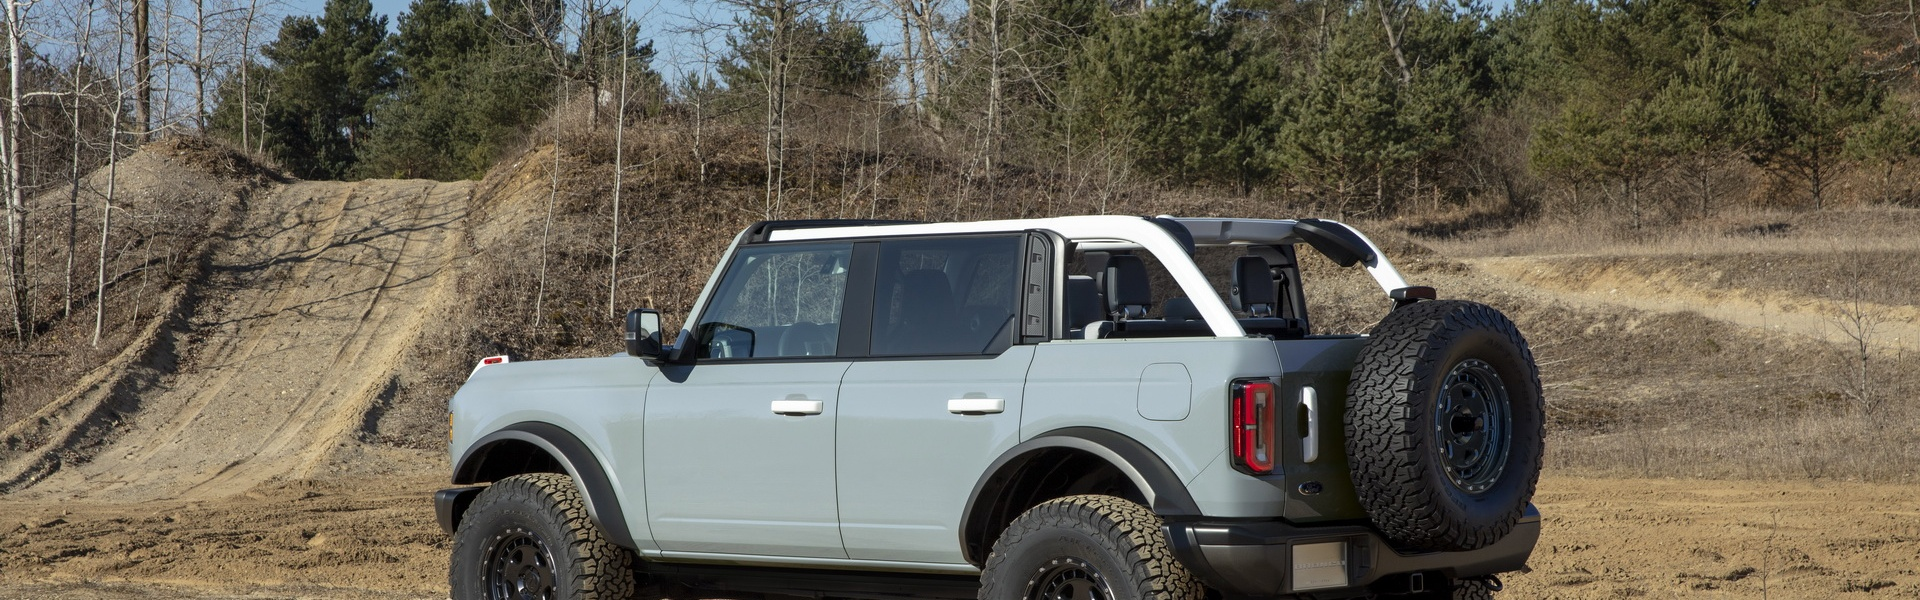 Ford-Bronco-Features-18.jpg